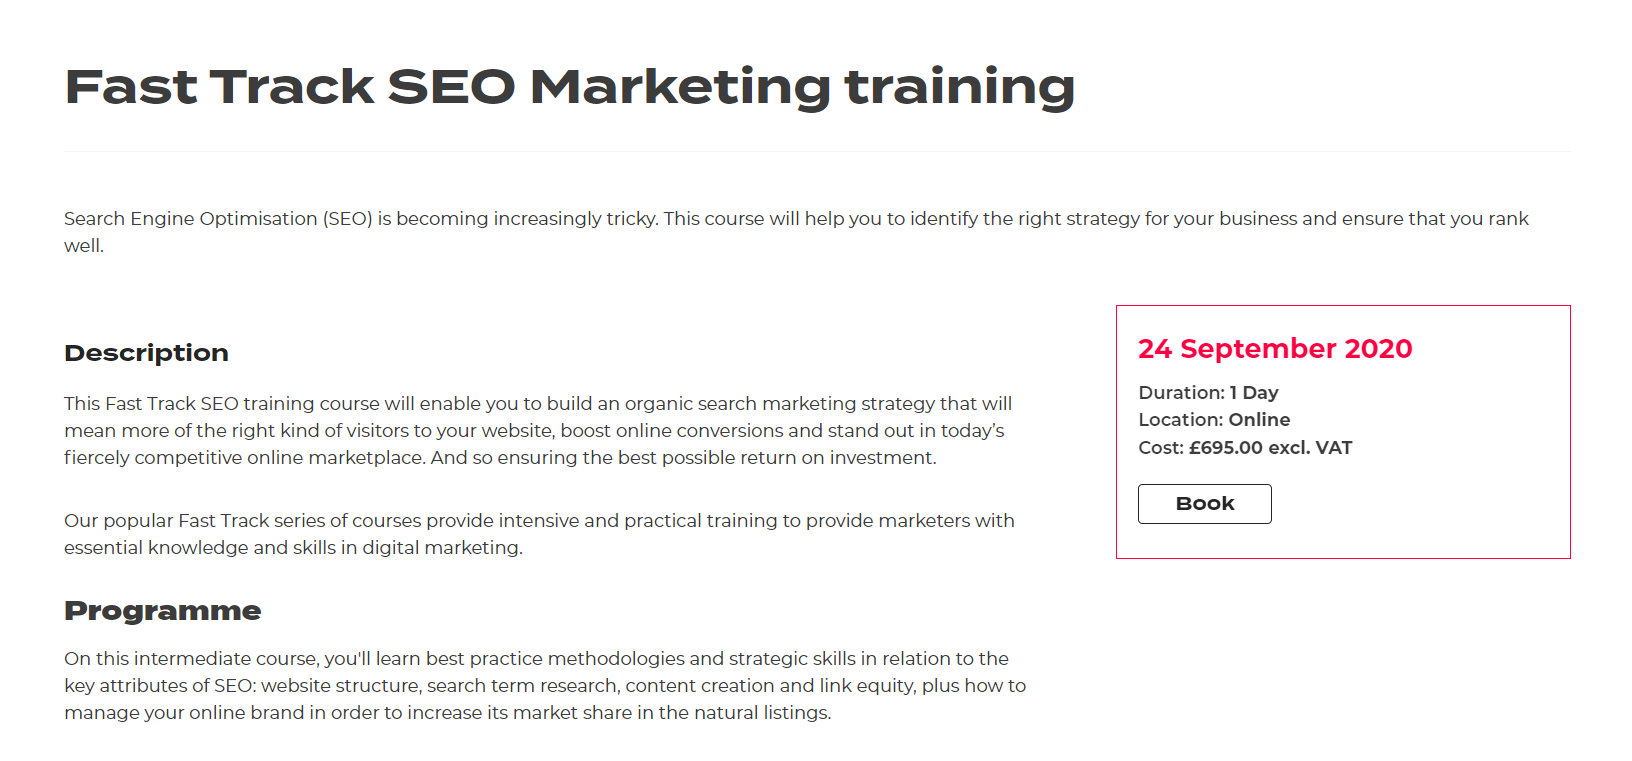 Econsultancy Fast Track SEO Marketing Training